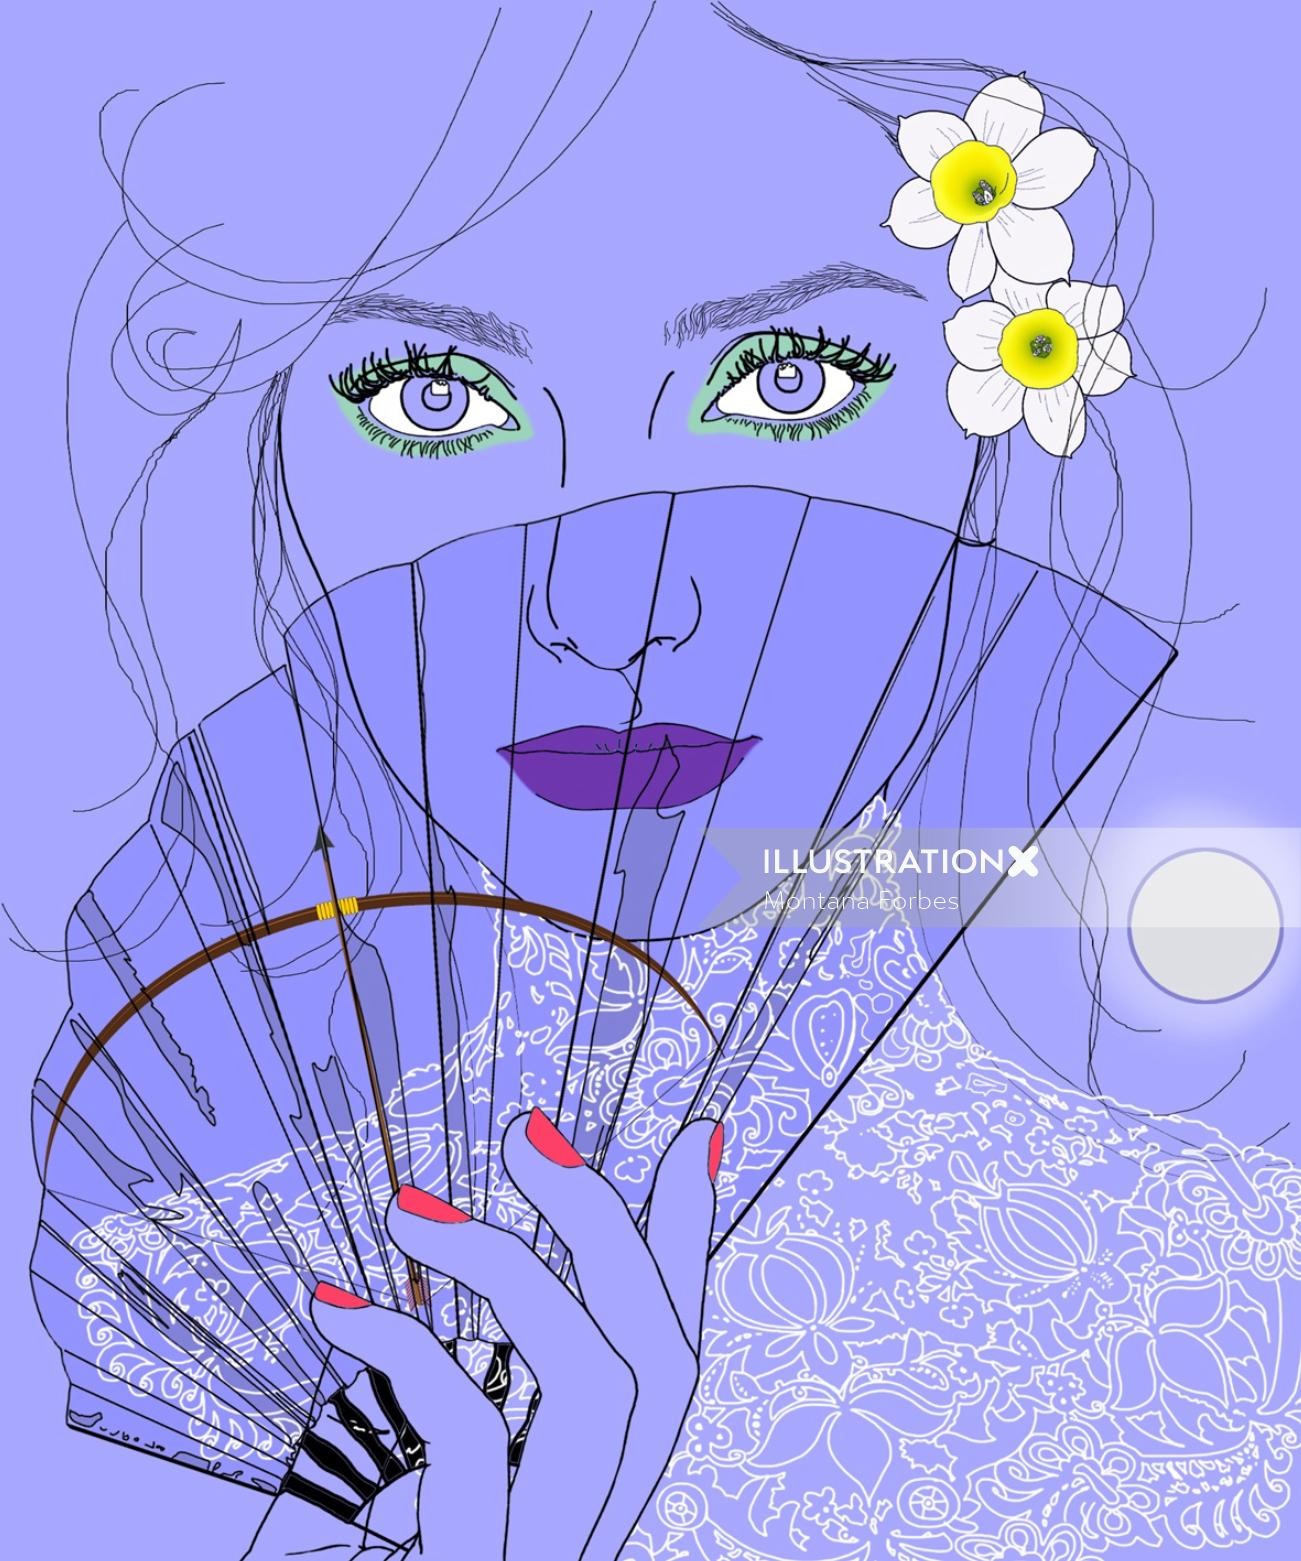 Woman fashion illustration by Montana Forbes